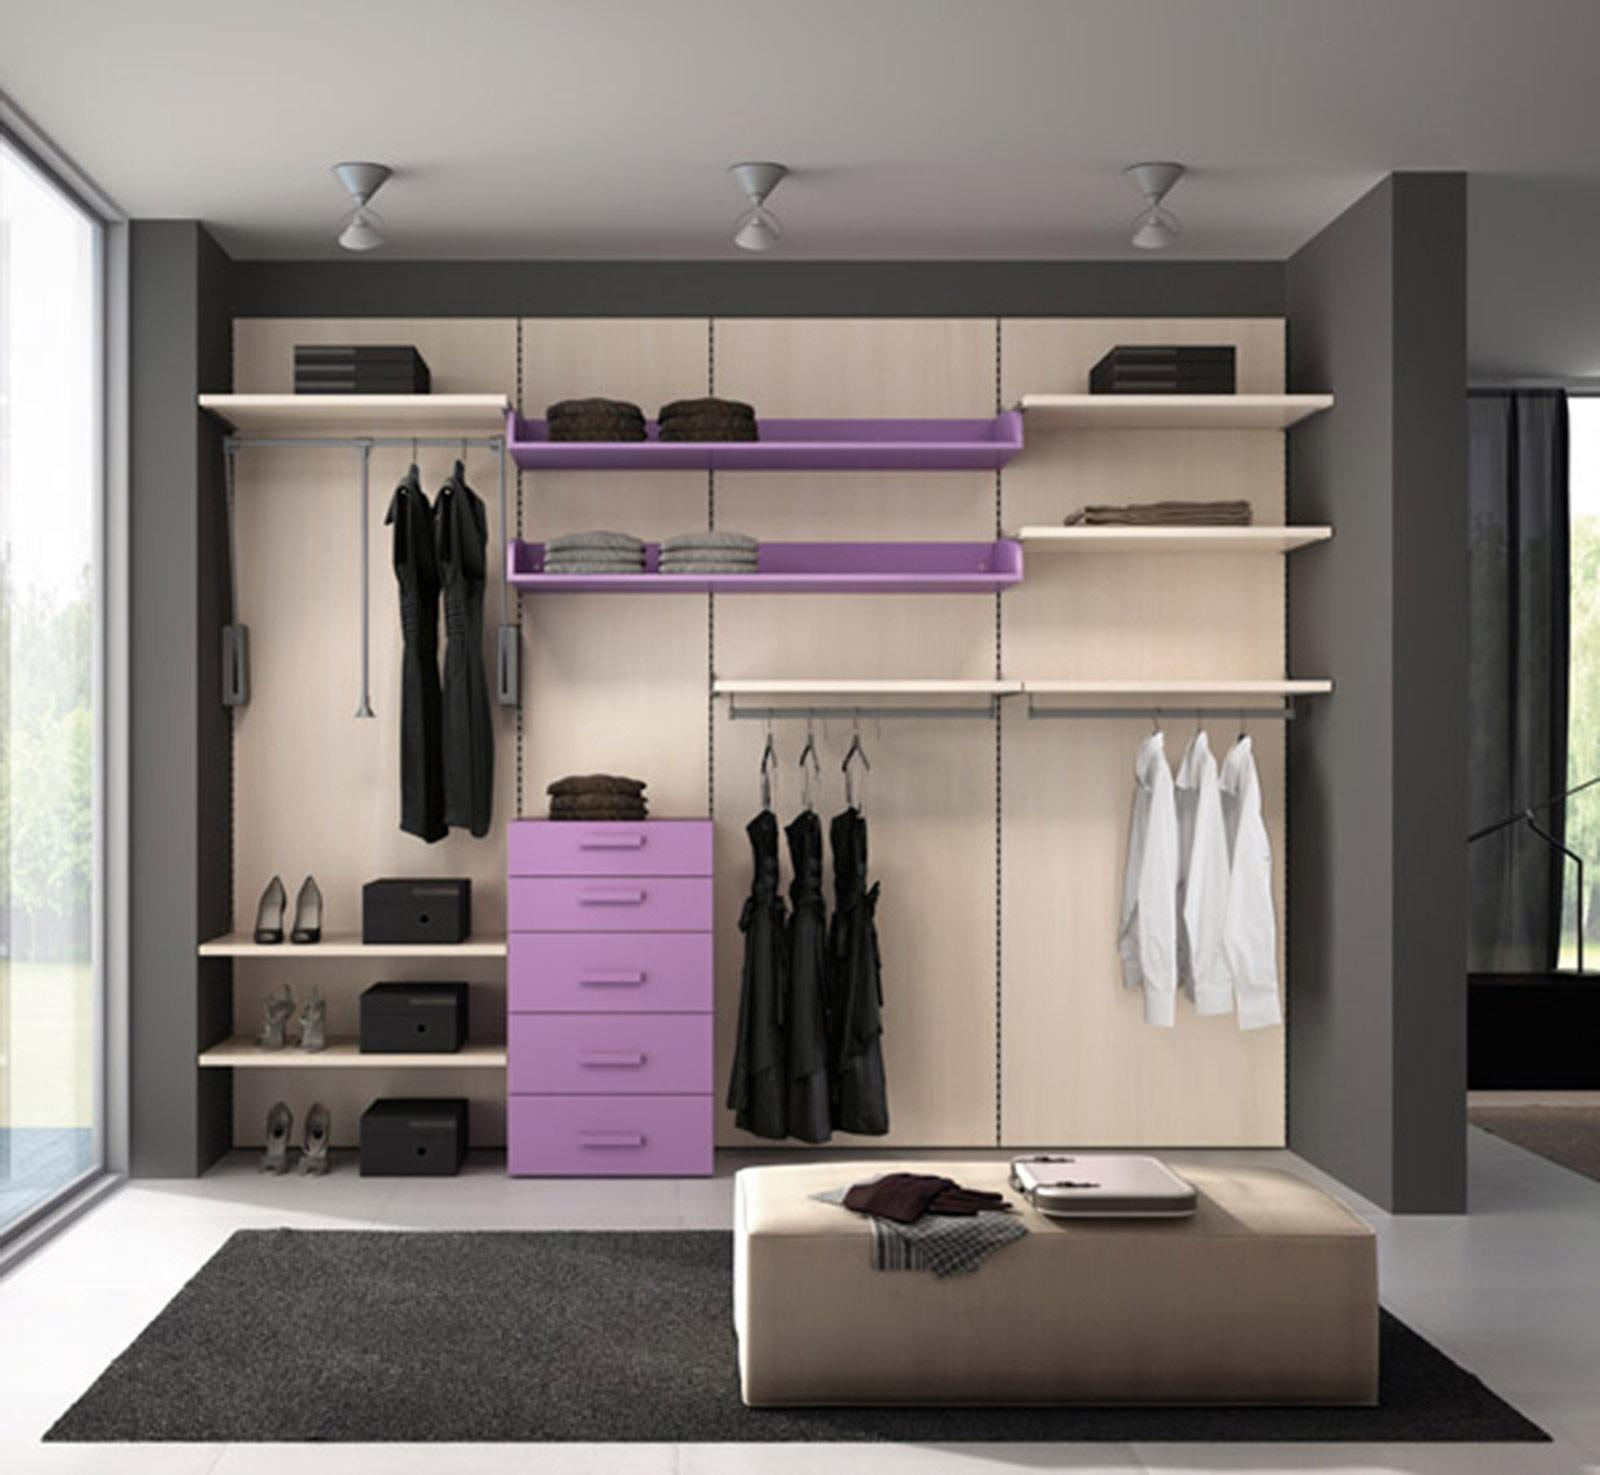 Mirror Bedroom Furniture The Most Fashionable Dressing Room Idea For Stylish Look